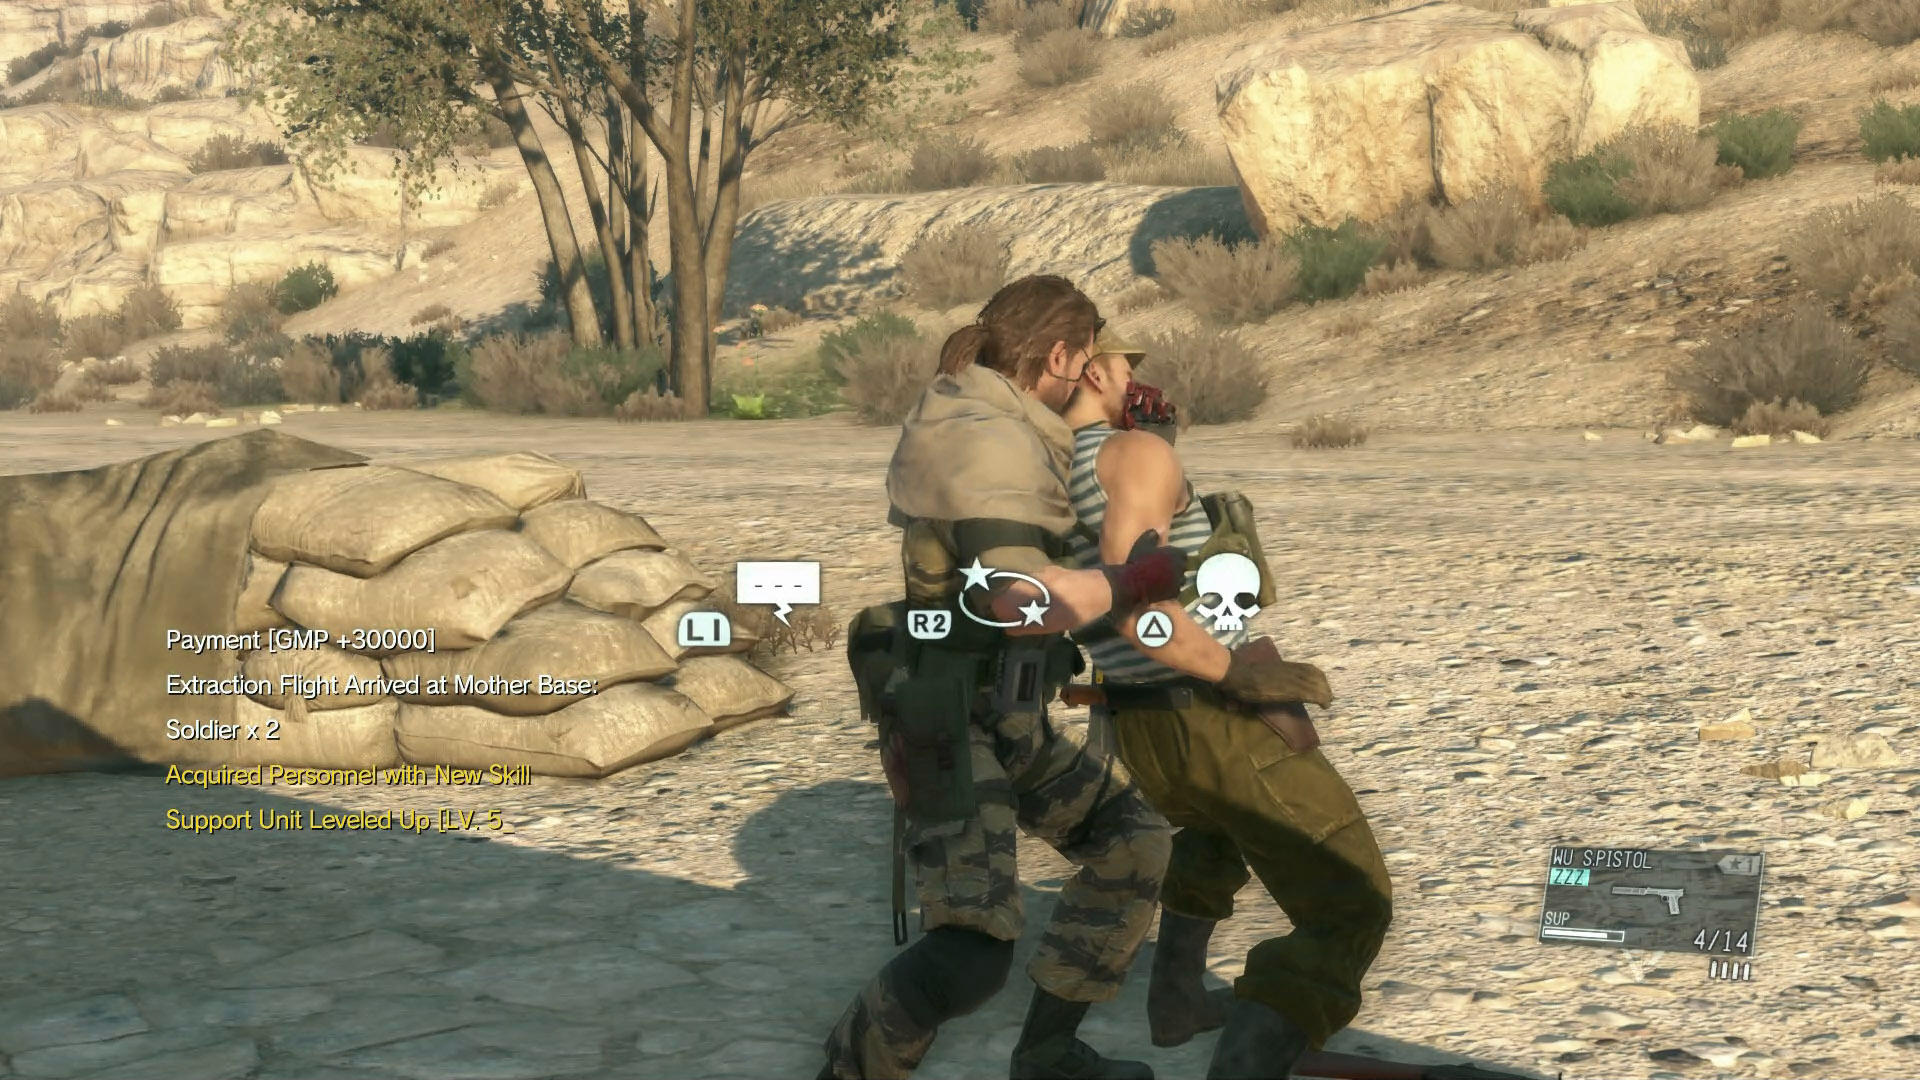 Metal Gear Solid 5: The Phantom Pain - how to unlock all